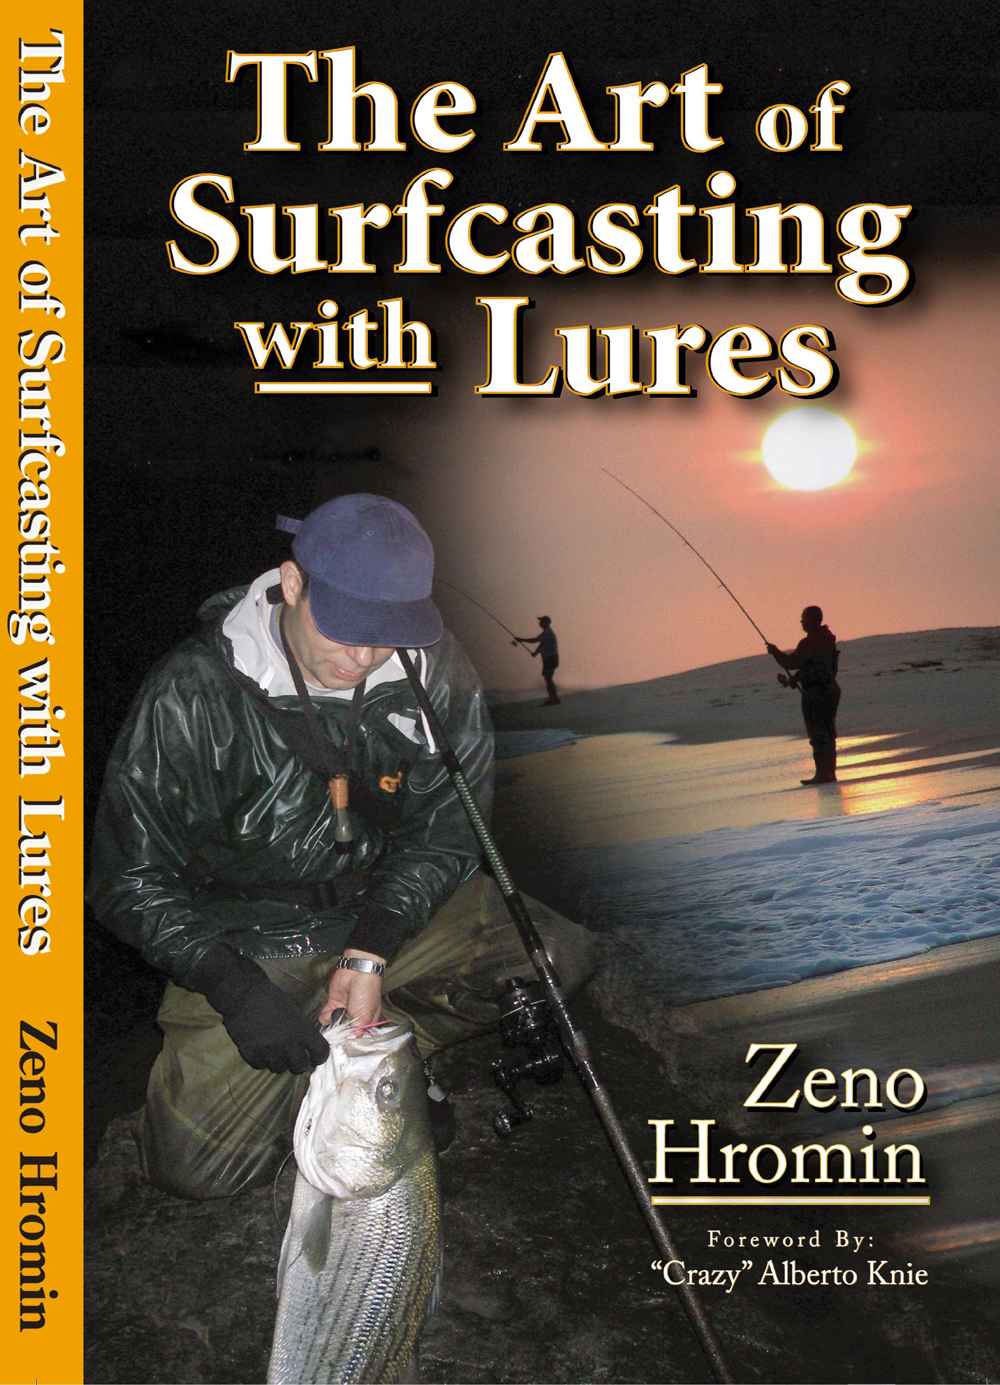 Links to Free Old Fly Fishing and Fly Tying Books